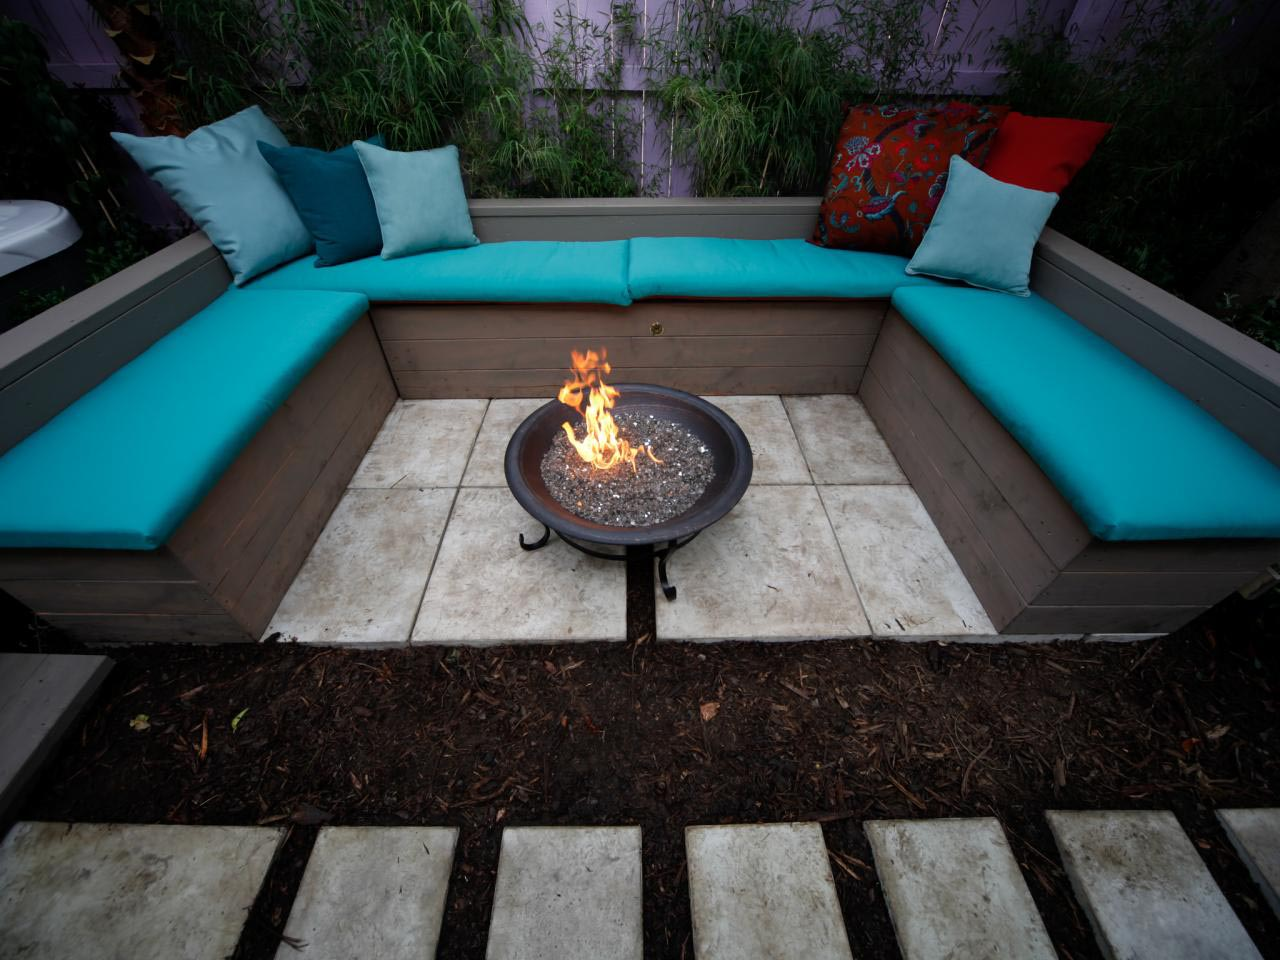 stone fire pit deck and patio furniture. contemporary backyard patio ...